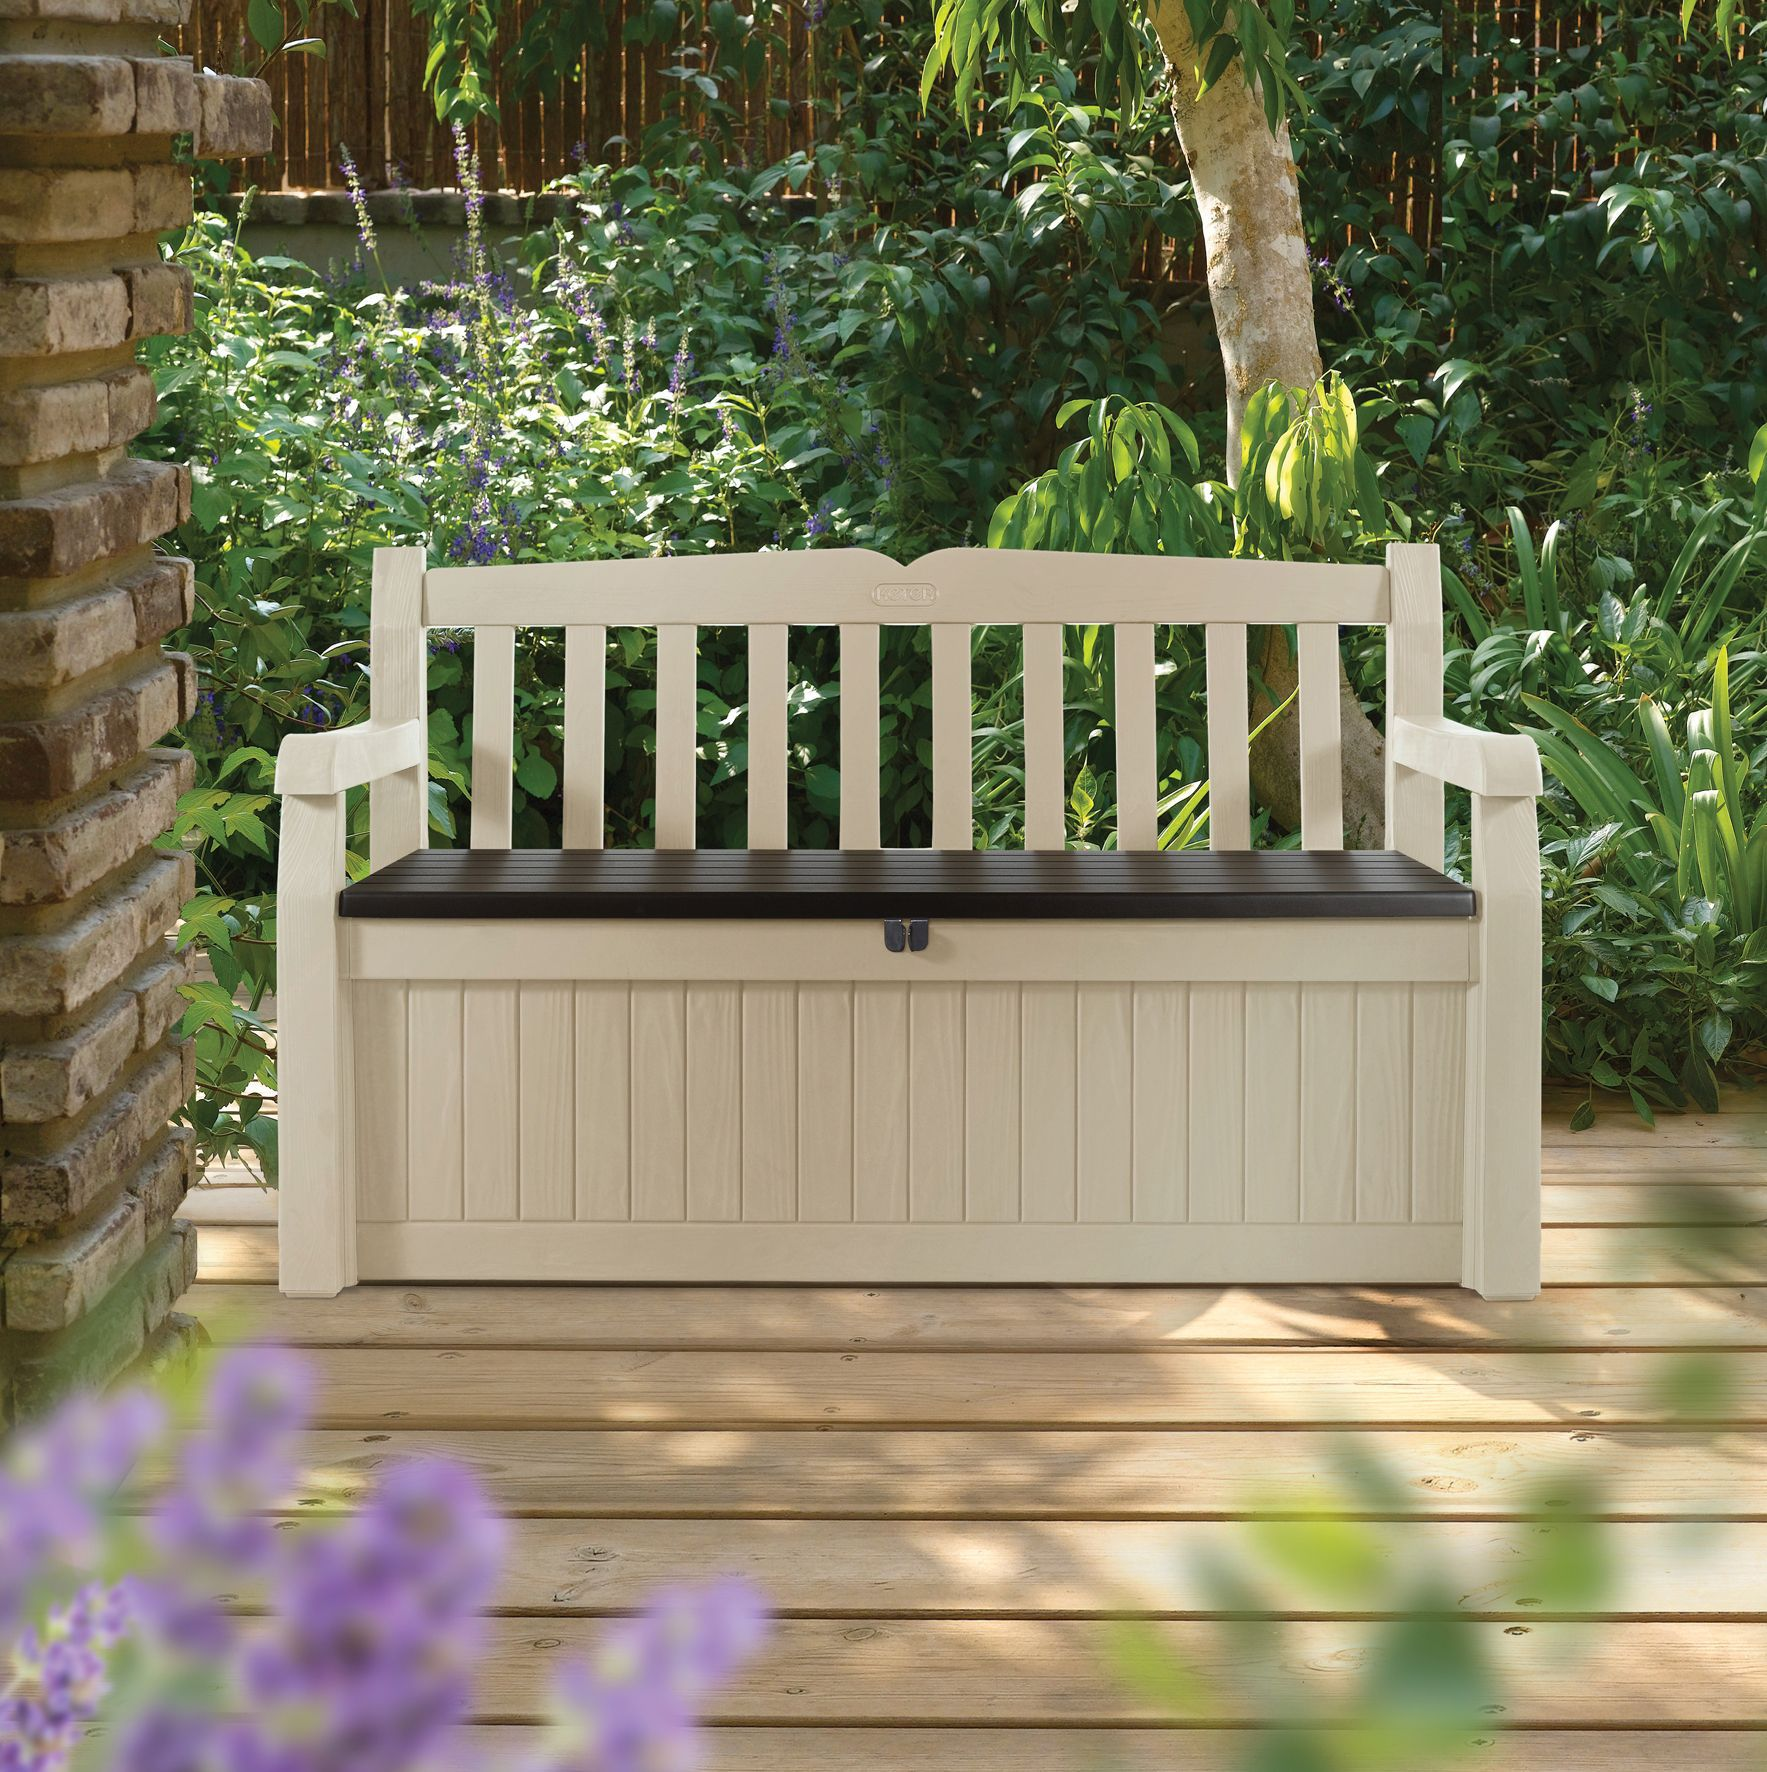 Eden Plastic Garden Storage Bench Departments